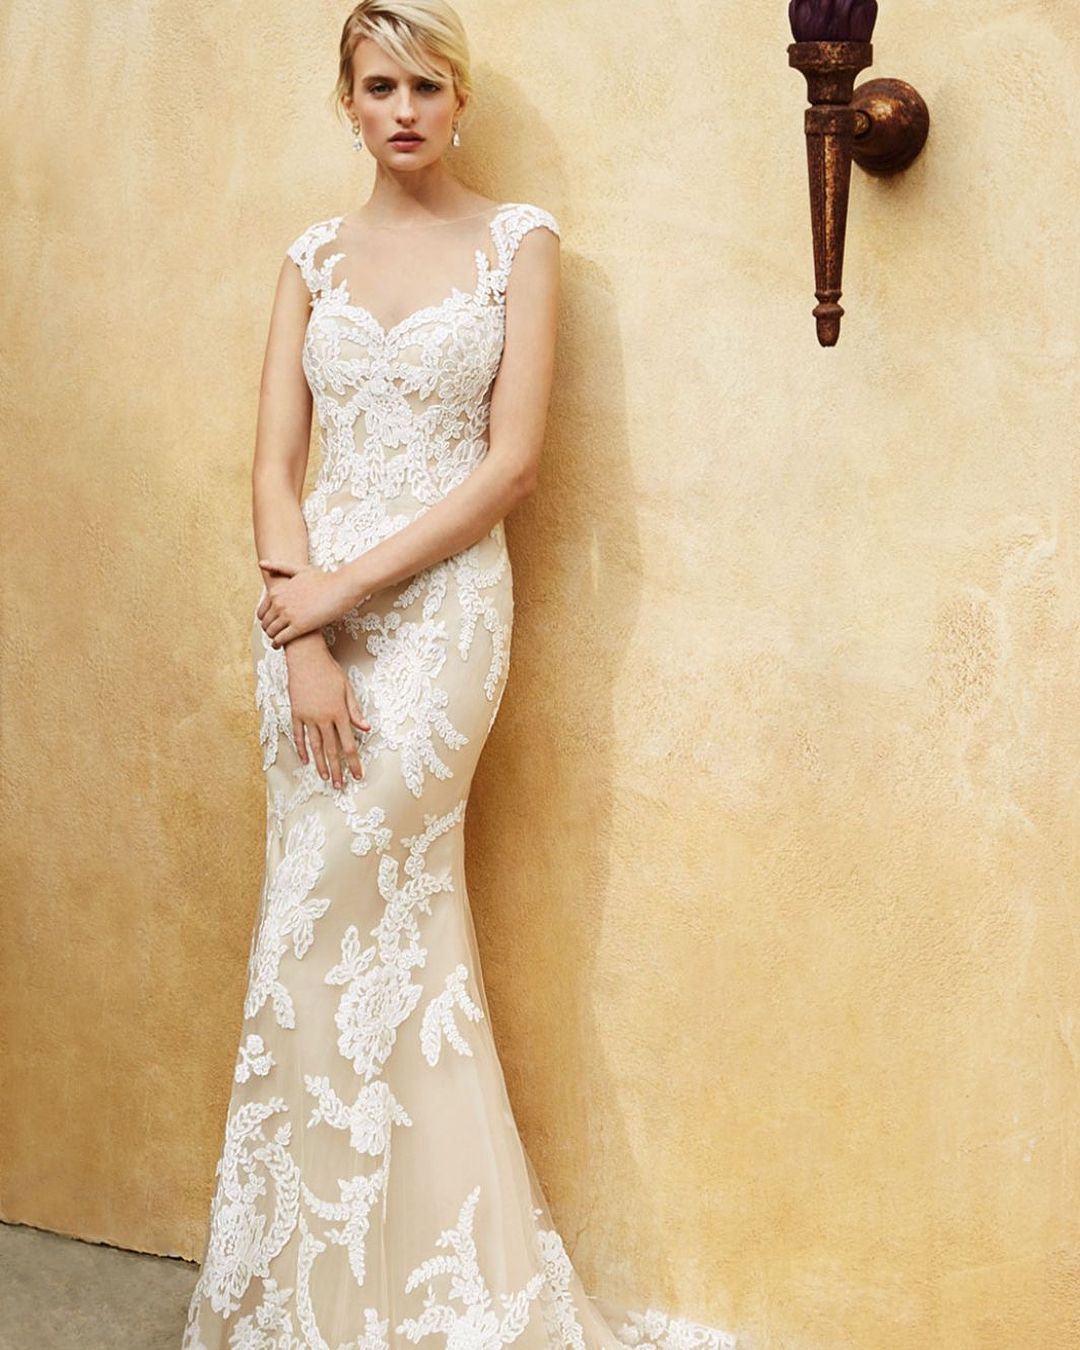 Michelangela Bridal Boutique: This Lace Sheath With Illusion Back And Pearl Button